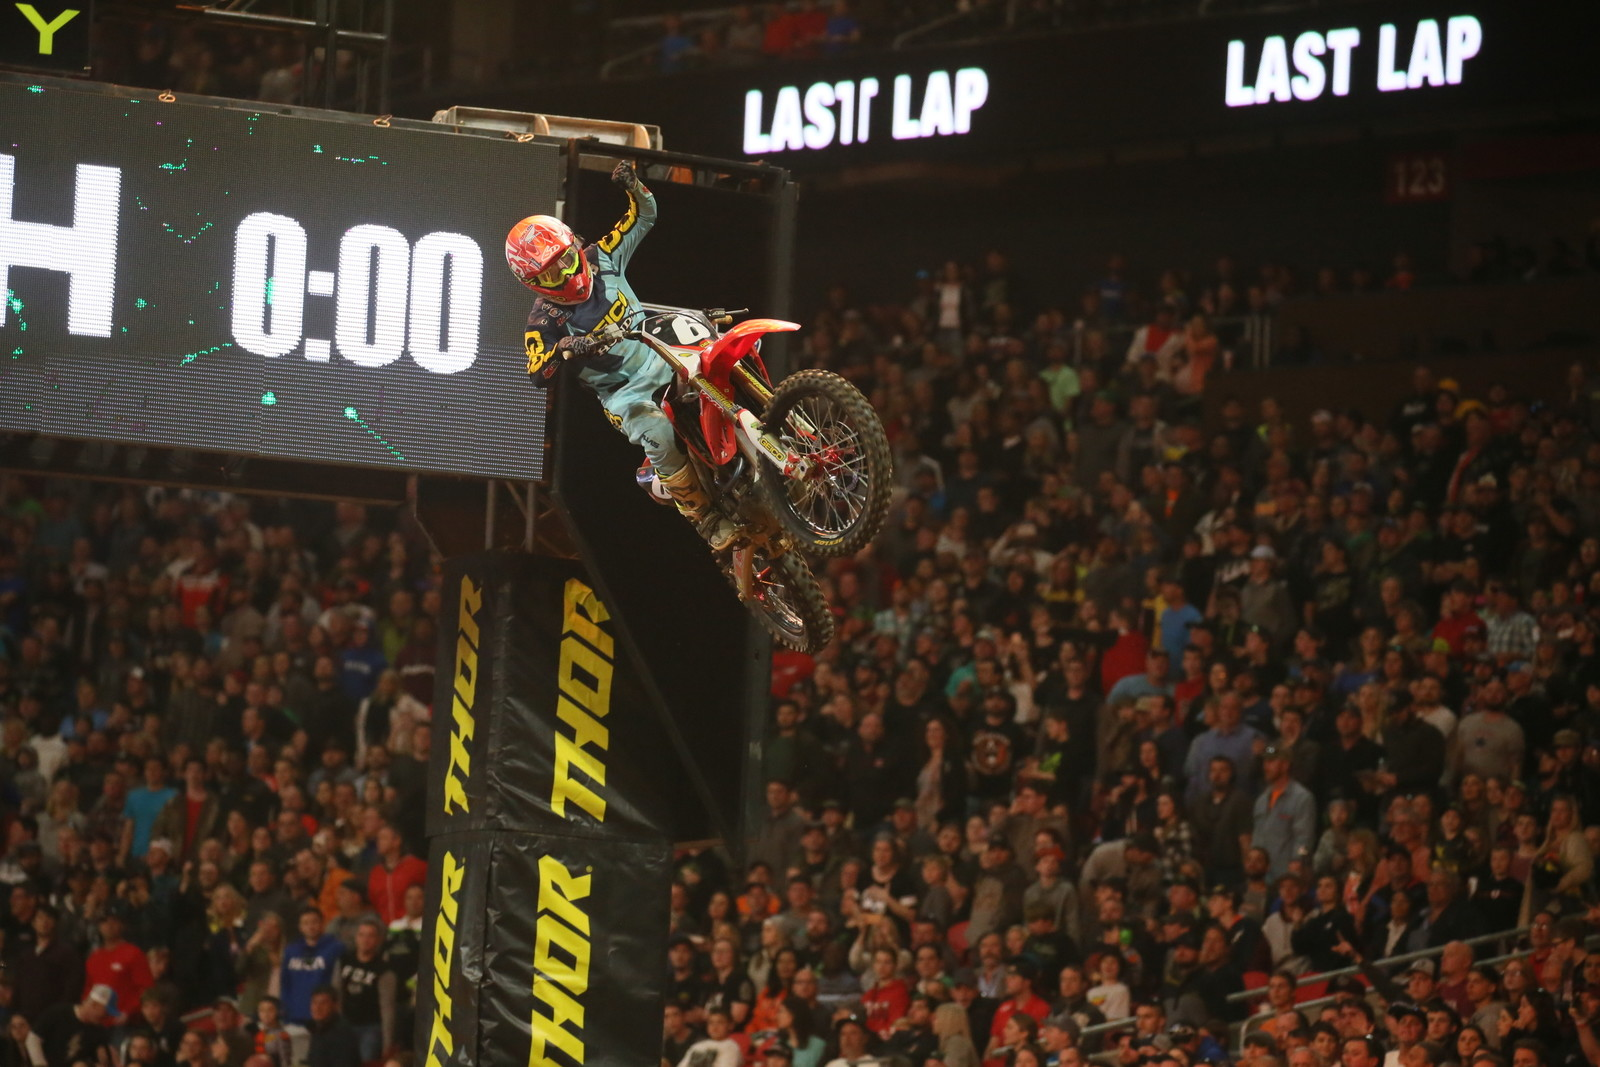 Jeremy Martin secured his first Main Event win of the season here in Atlanta.